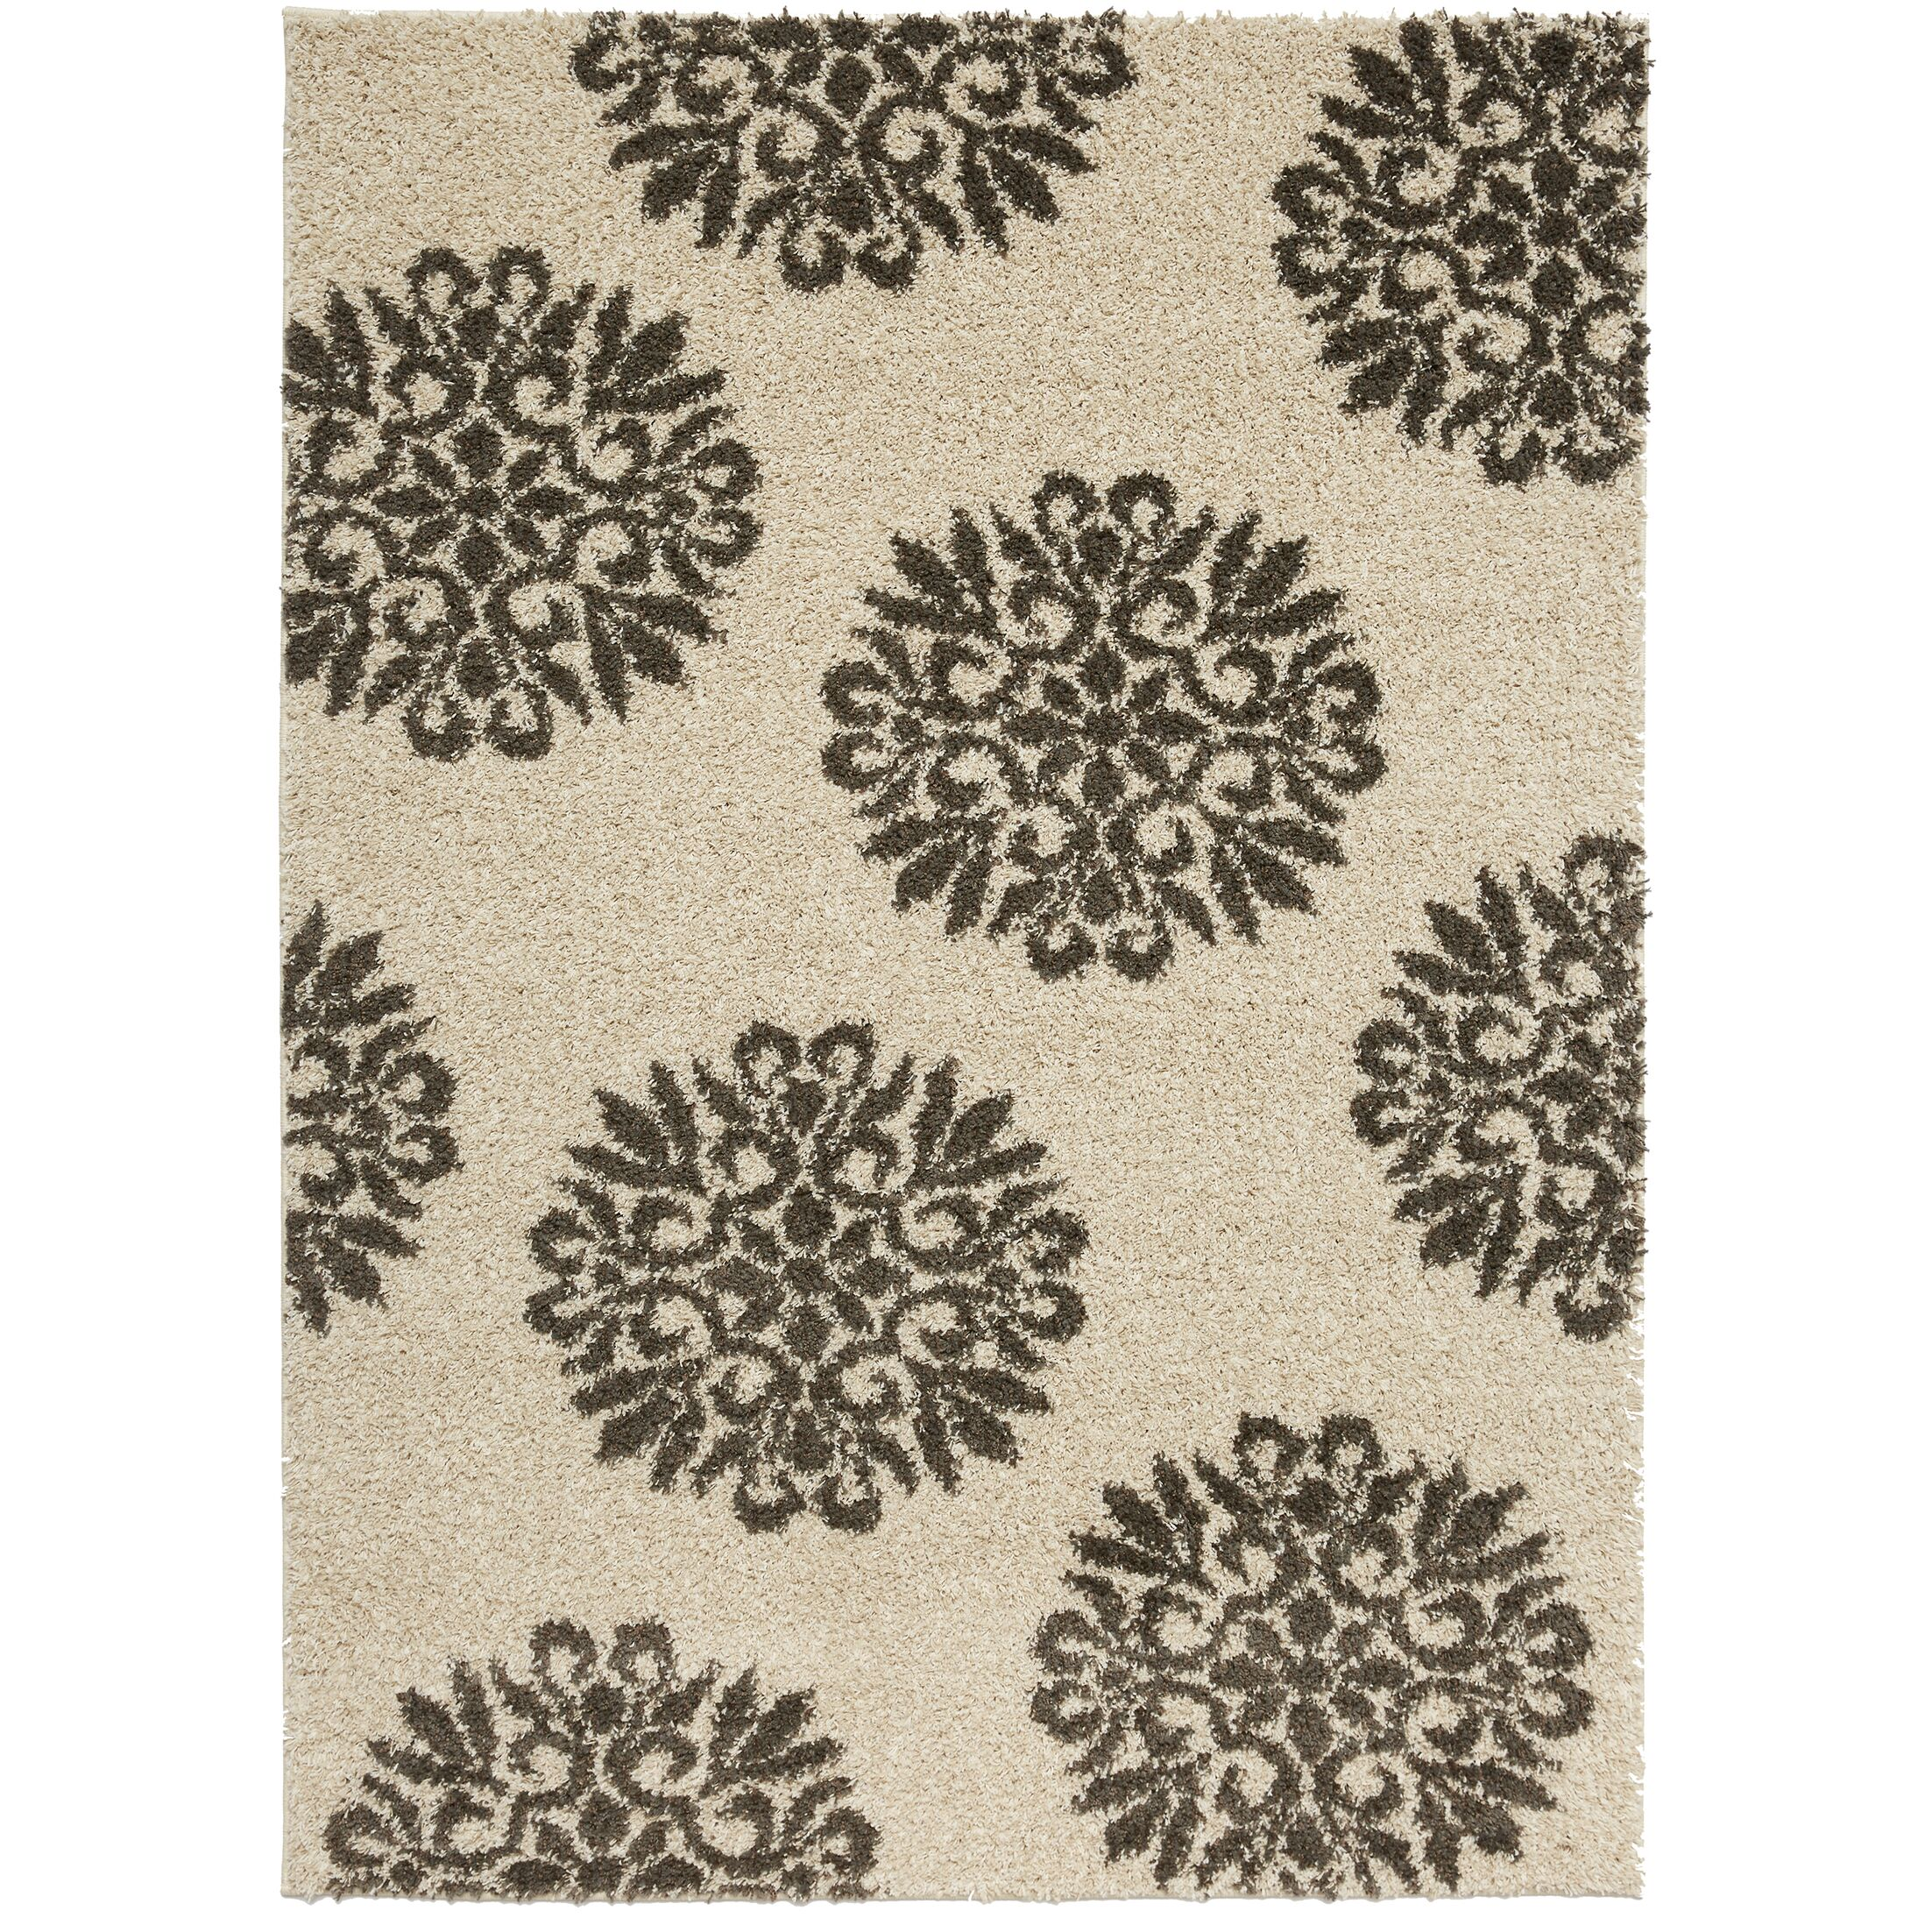 Coney Exploded Medallions Shag Cocoa Area Rug Rug Size: Rectangle 5' x 7'